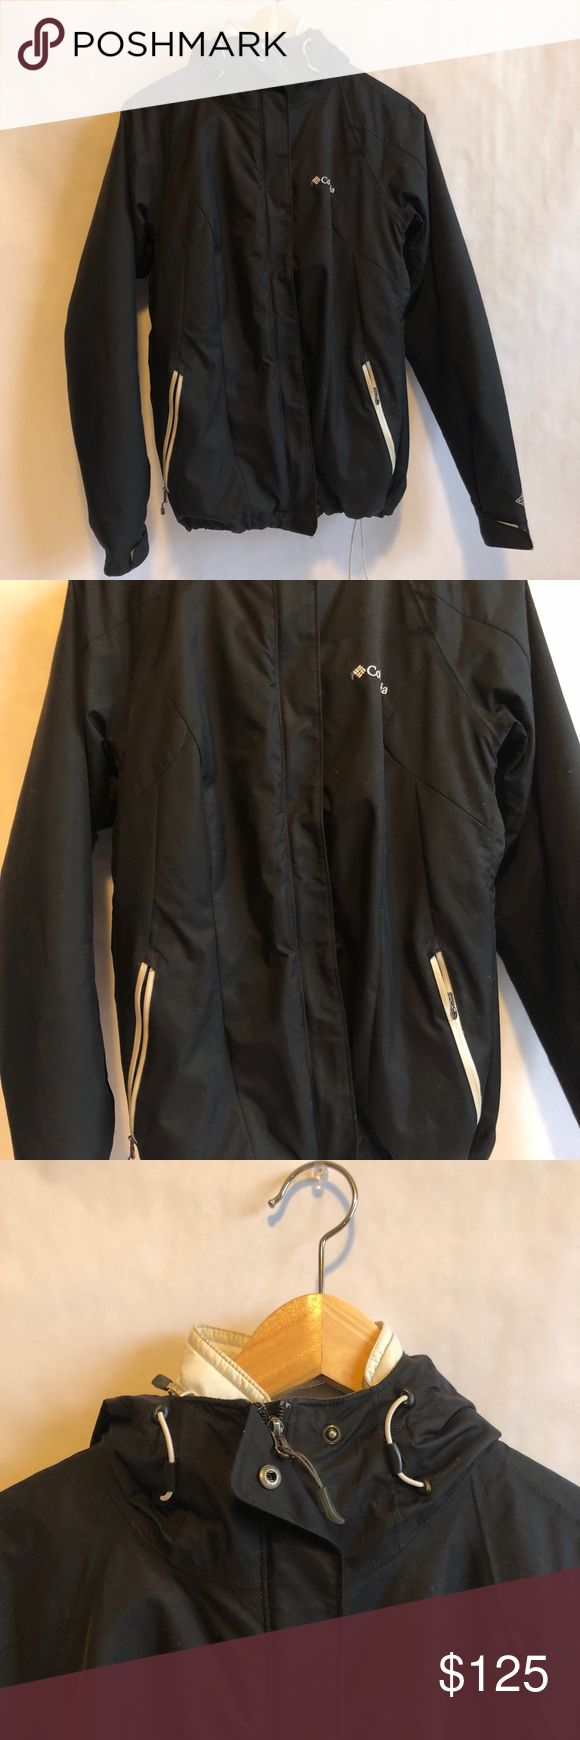 Women's Columbia interchangeable jacket (M). Pre- owned. Good condition. Warm. Worn for skiing and kept very warm. Can be taken apart and be used as a down jacket or rain jacket/wind breaker. Columbia Jackets & Coats